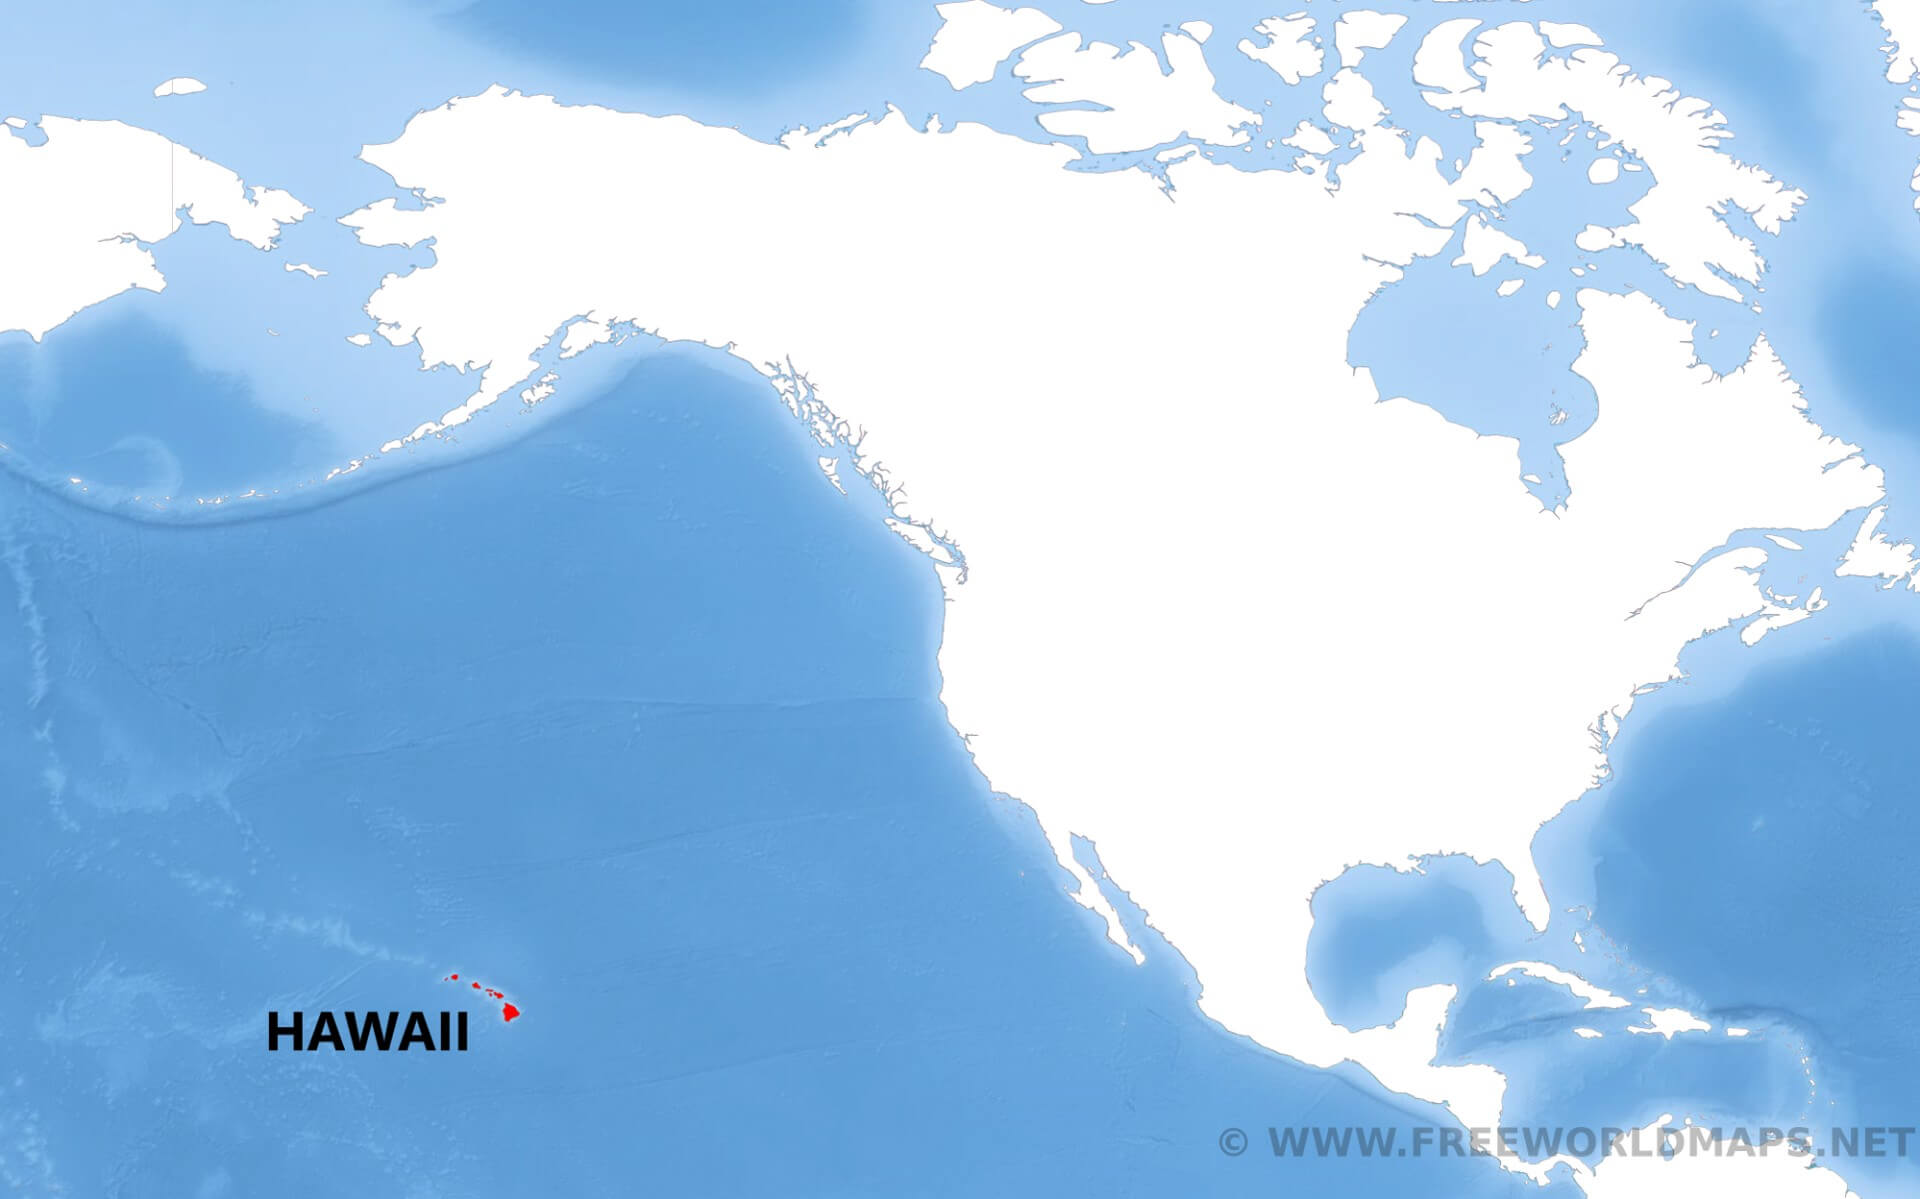 Where is Hawaii located on the map?